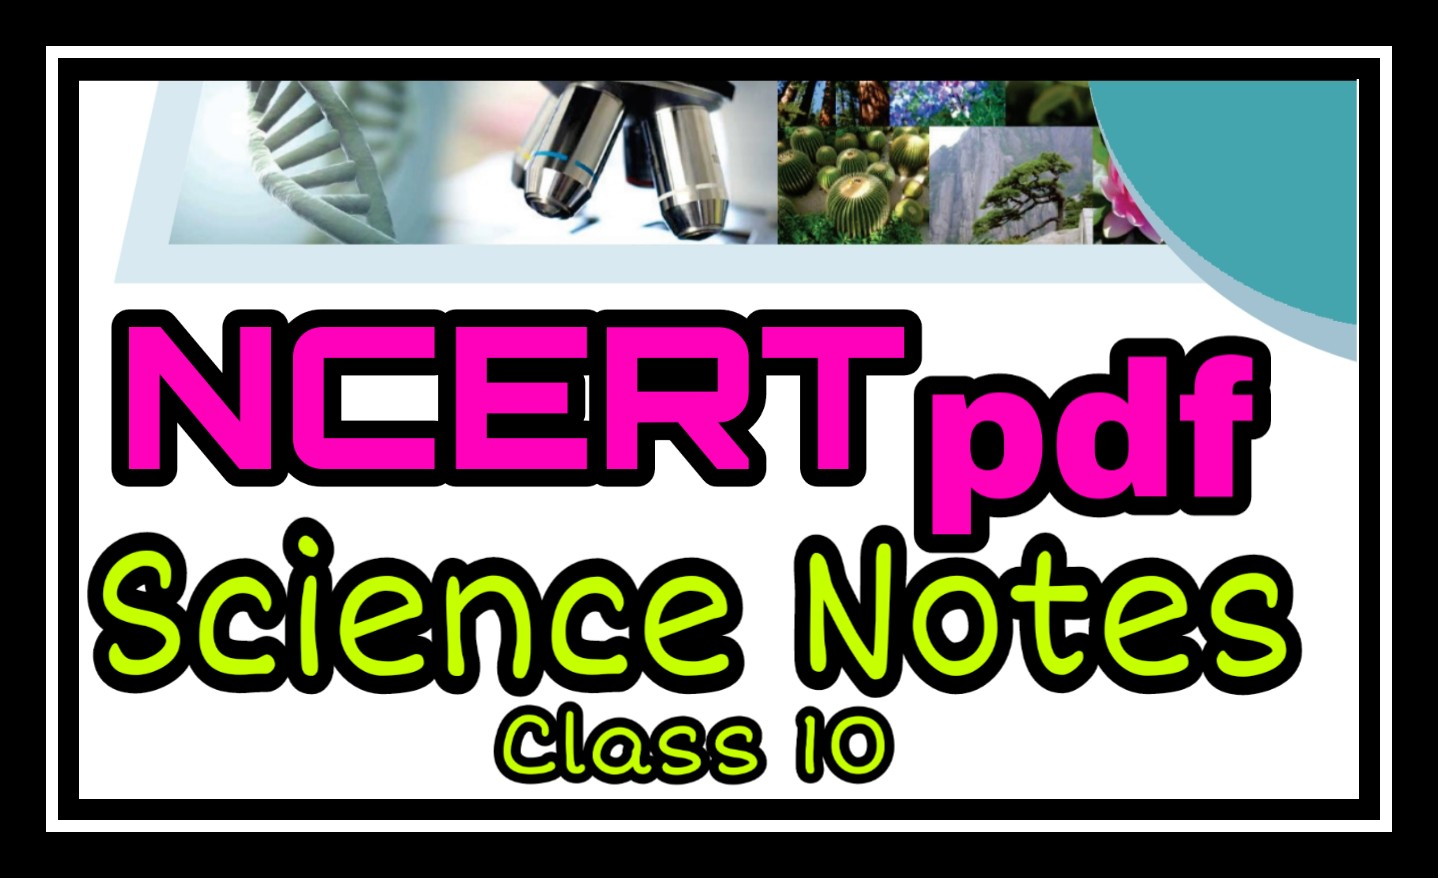 CLASS 10 SCIENCE NOTES PDF IN HINDI - Download pdf hindi enlgish